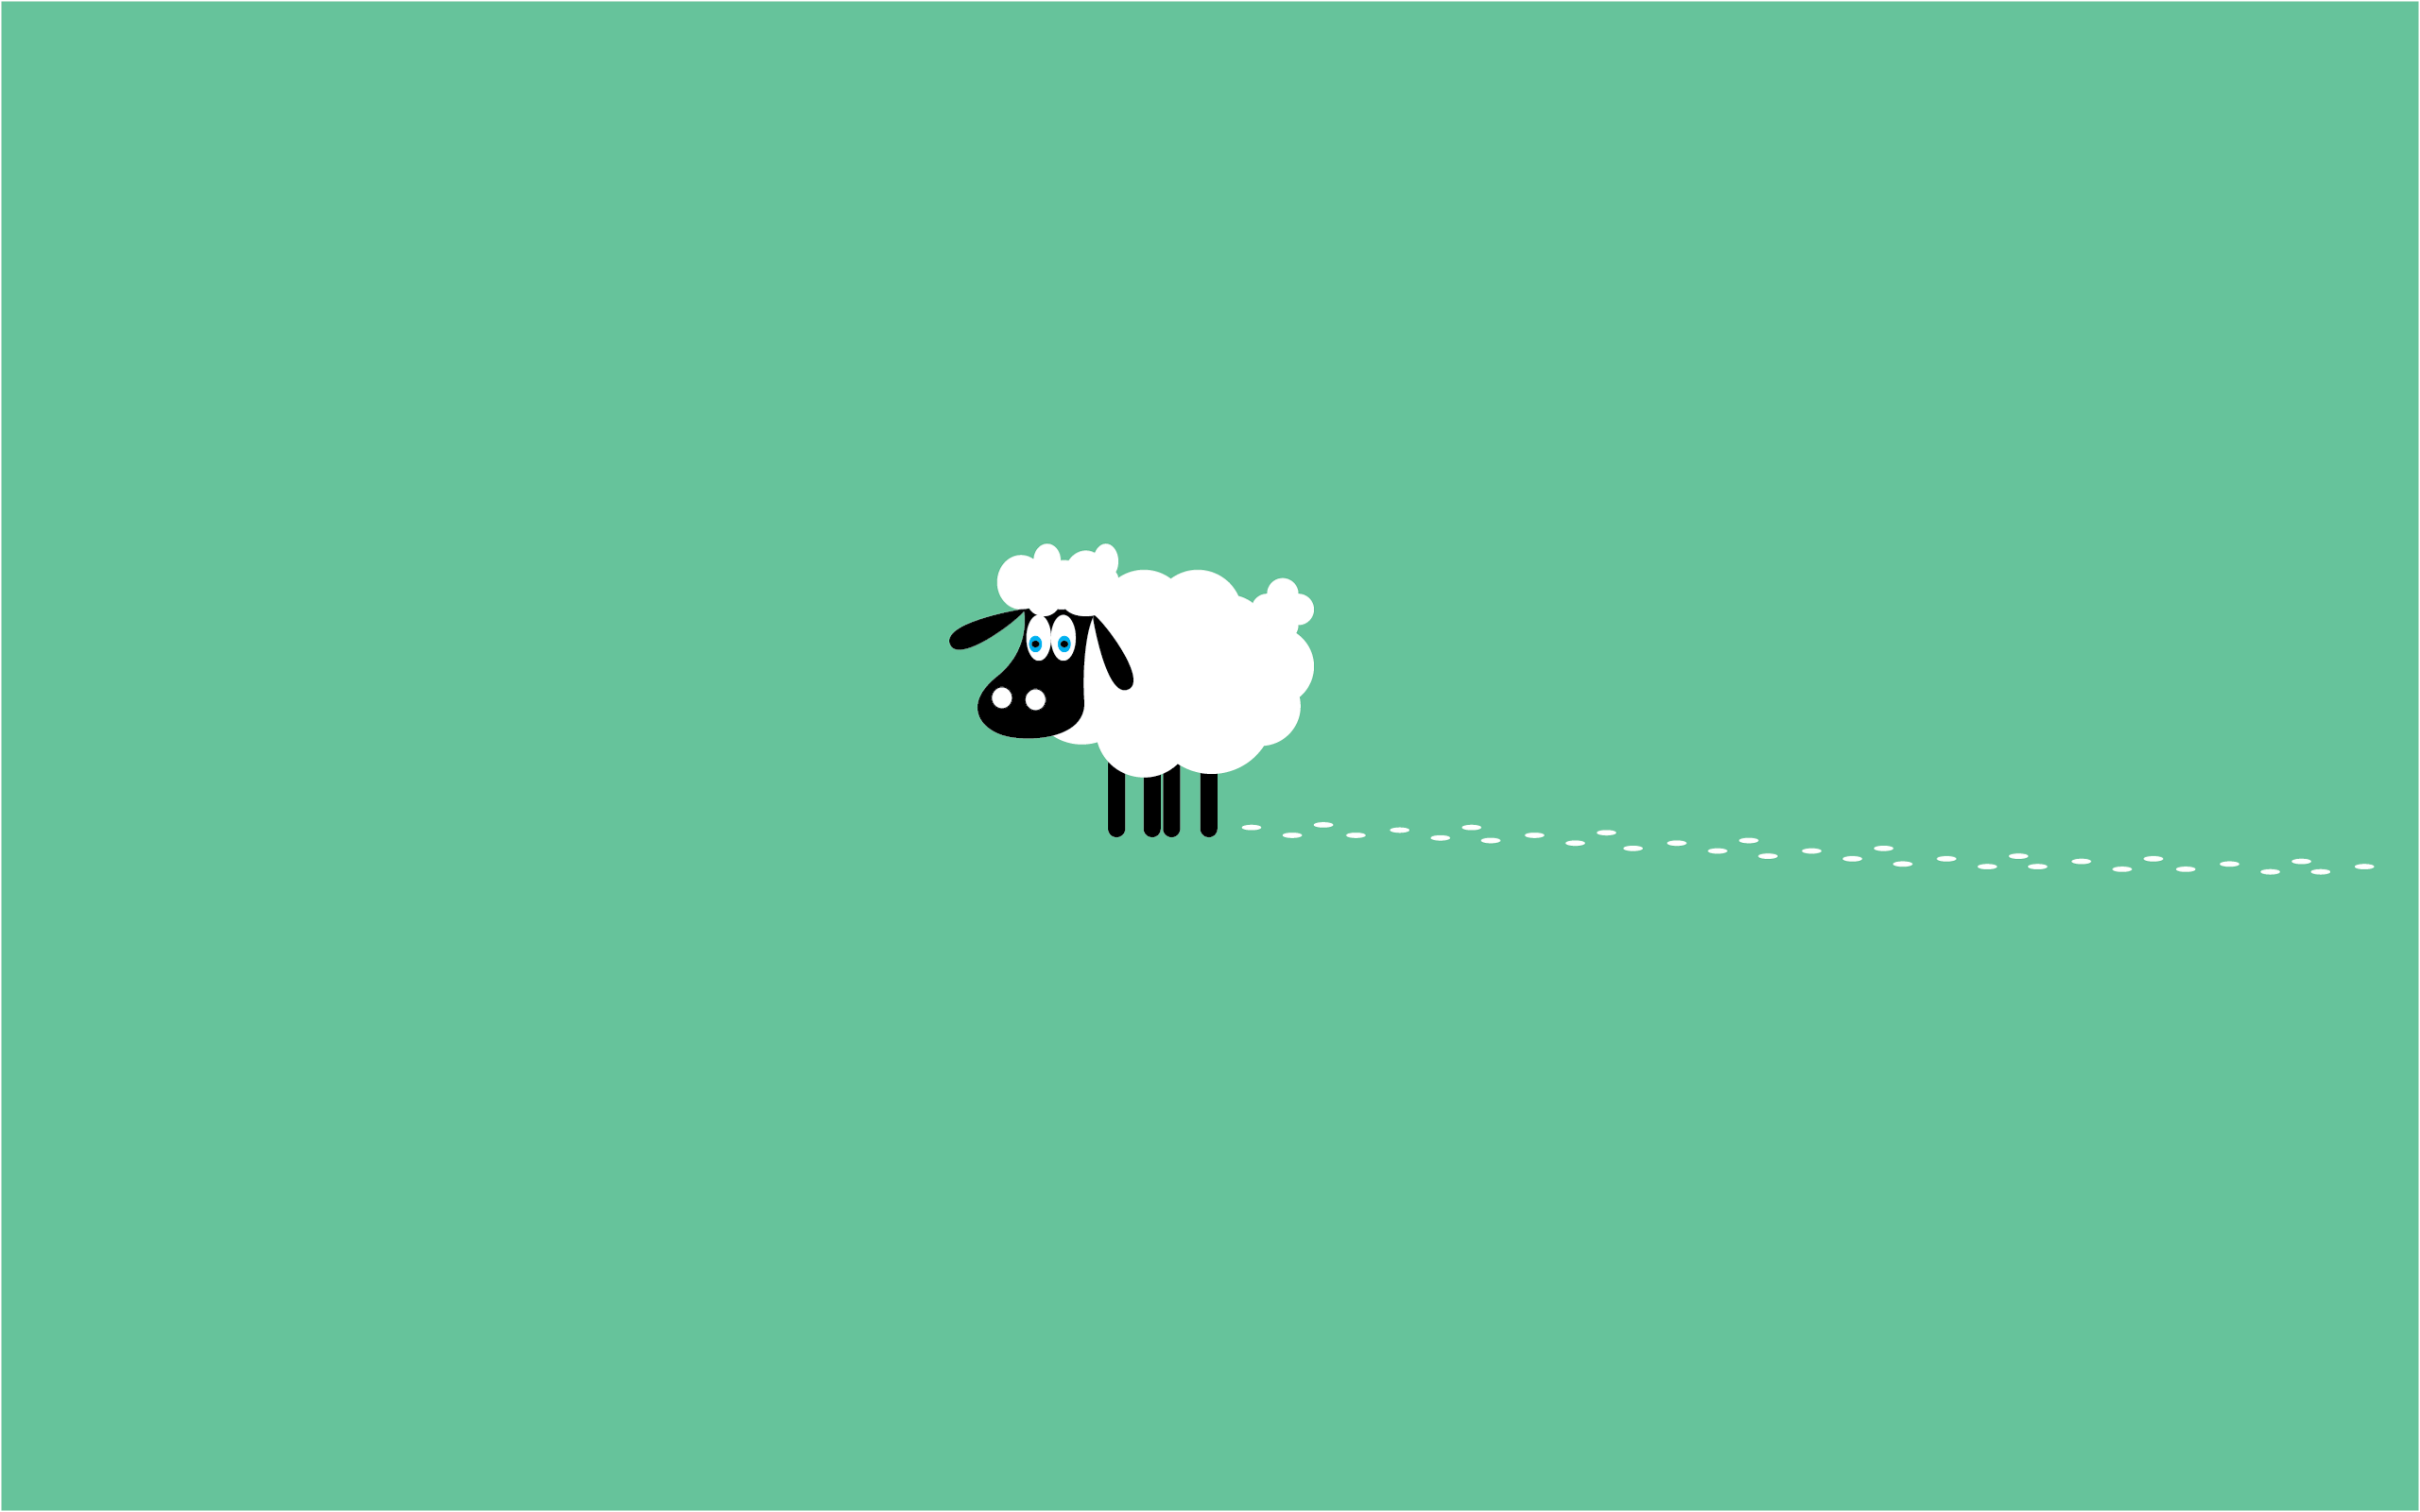 Sheep wallpapers wallpaper cave for Wallpaper home cartoon